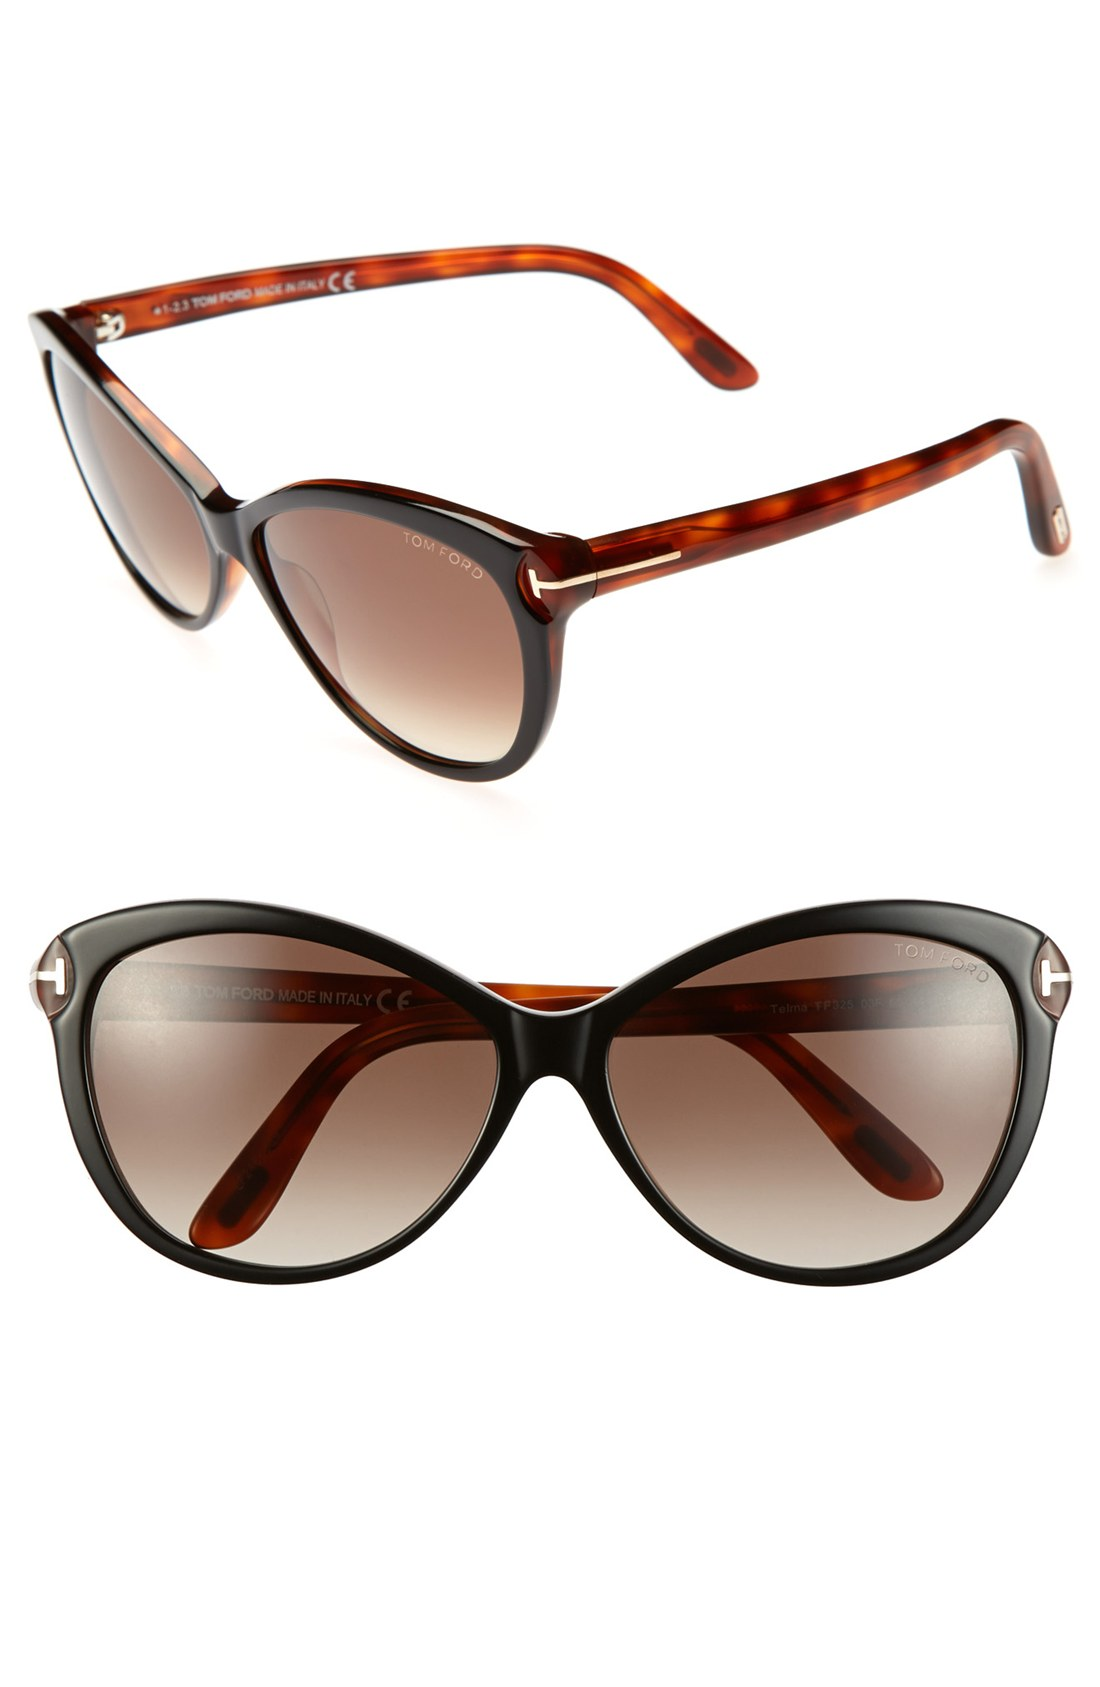 tom ford 39 telma 39 60mm cat eye sunglasses shiny black havana in. Cars Review. Best American Auto & Cars Review